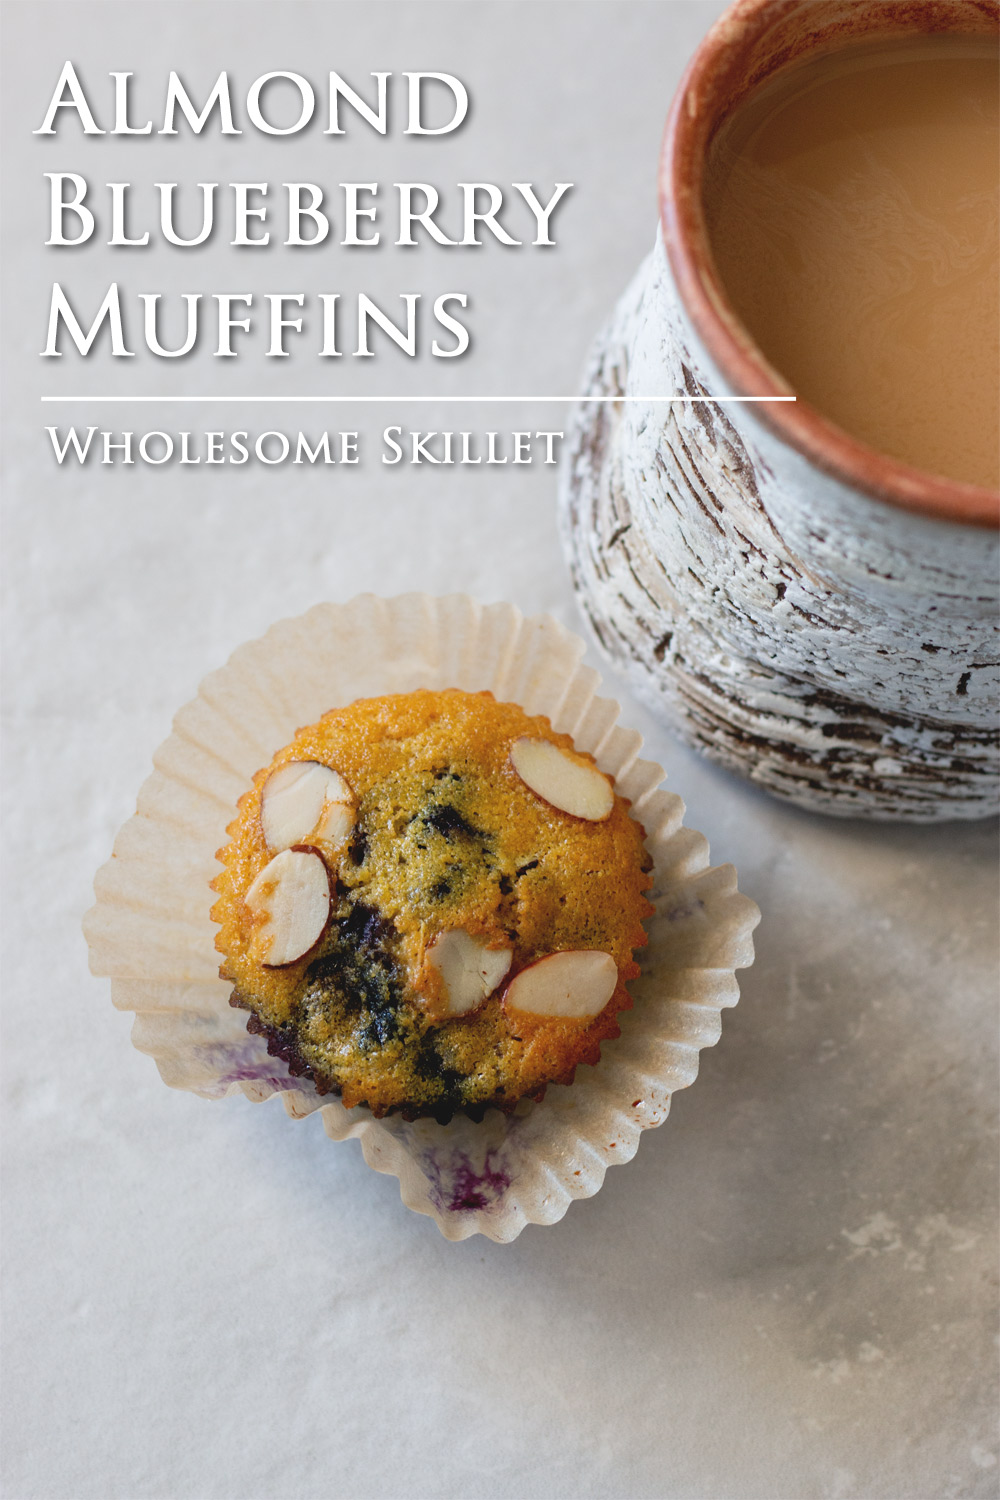 Almond Blueberry Muffins | Wholesome Skillet